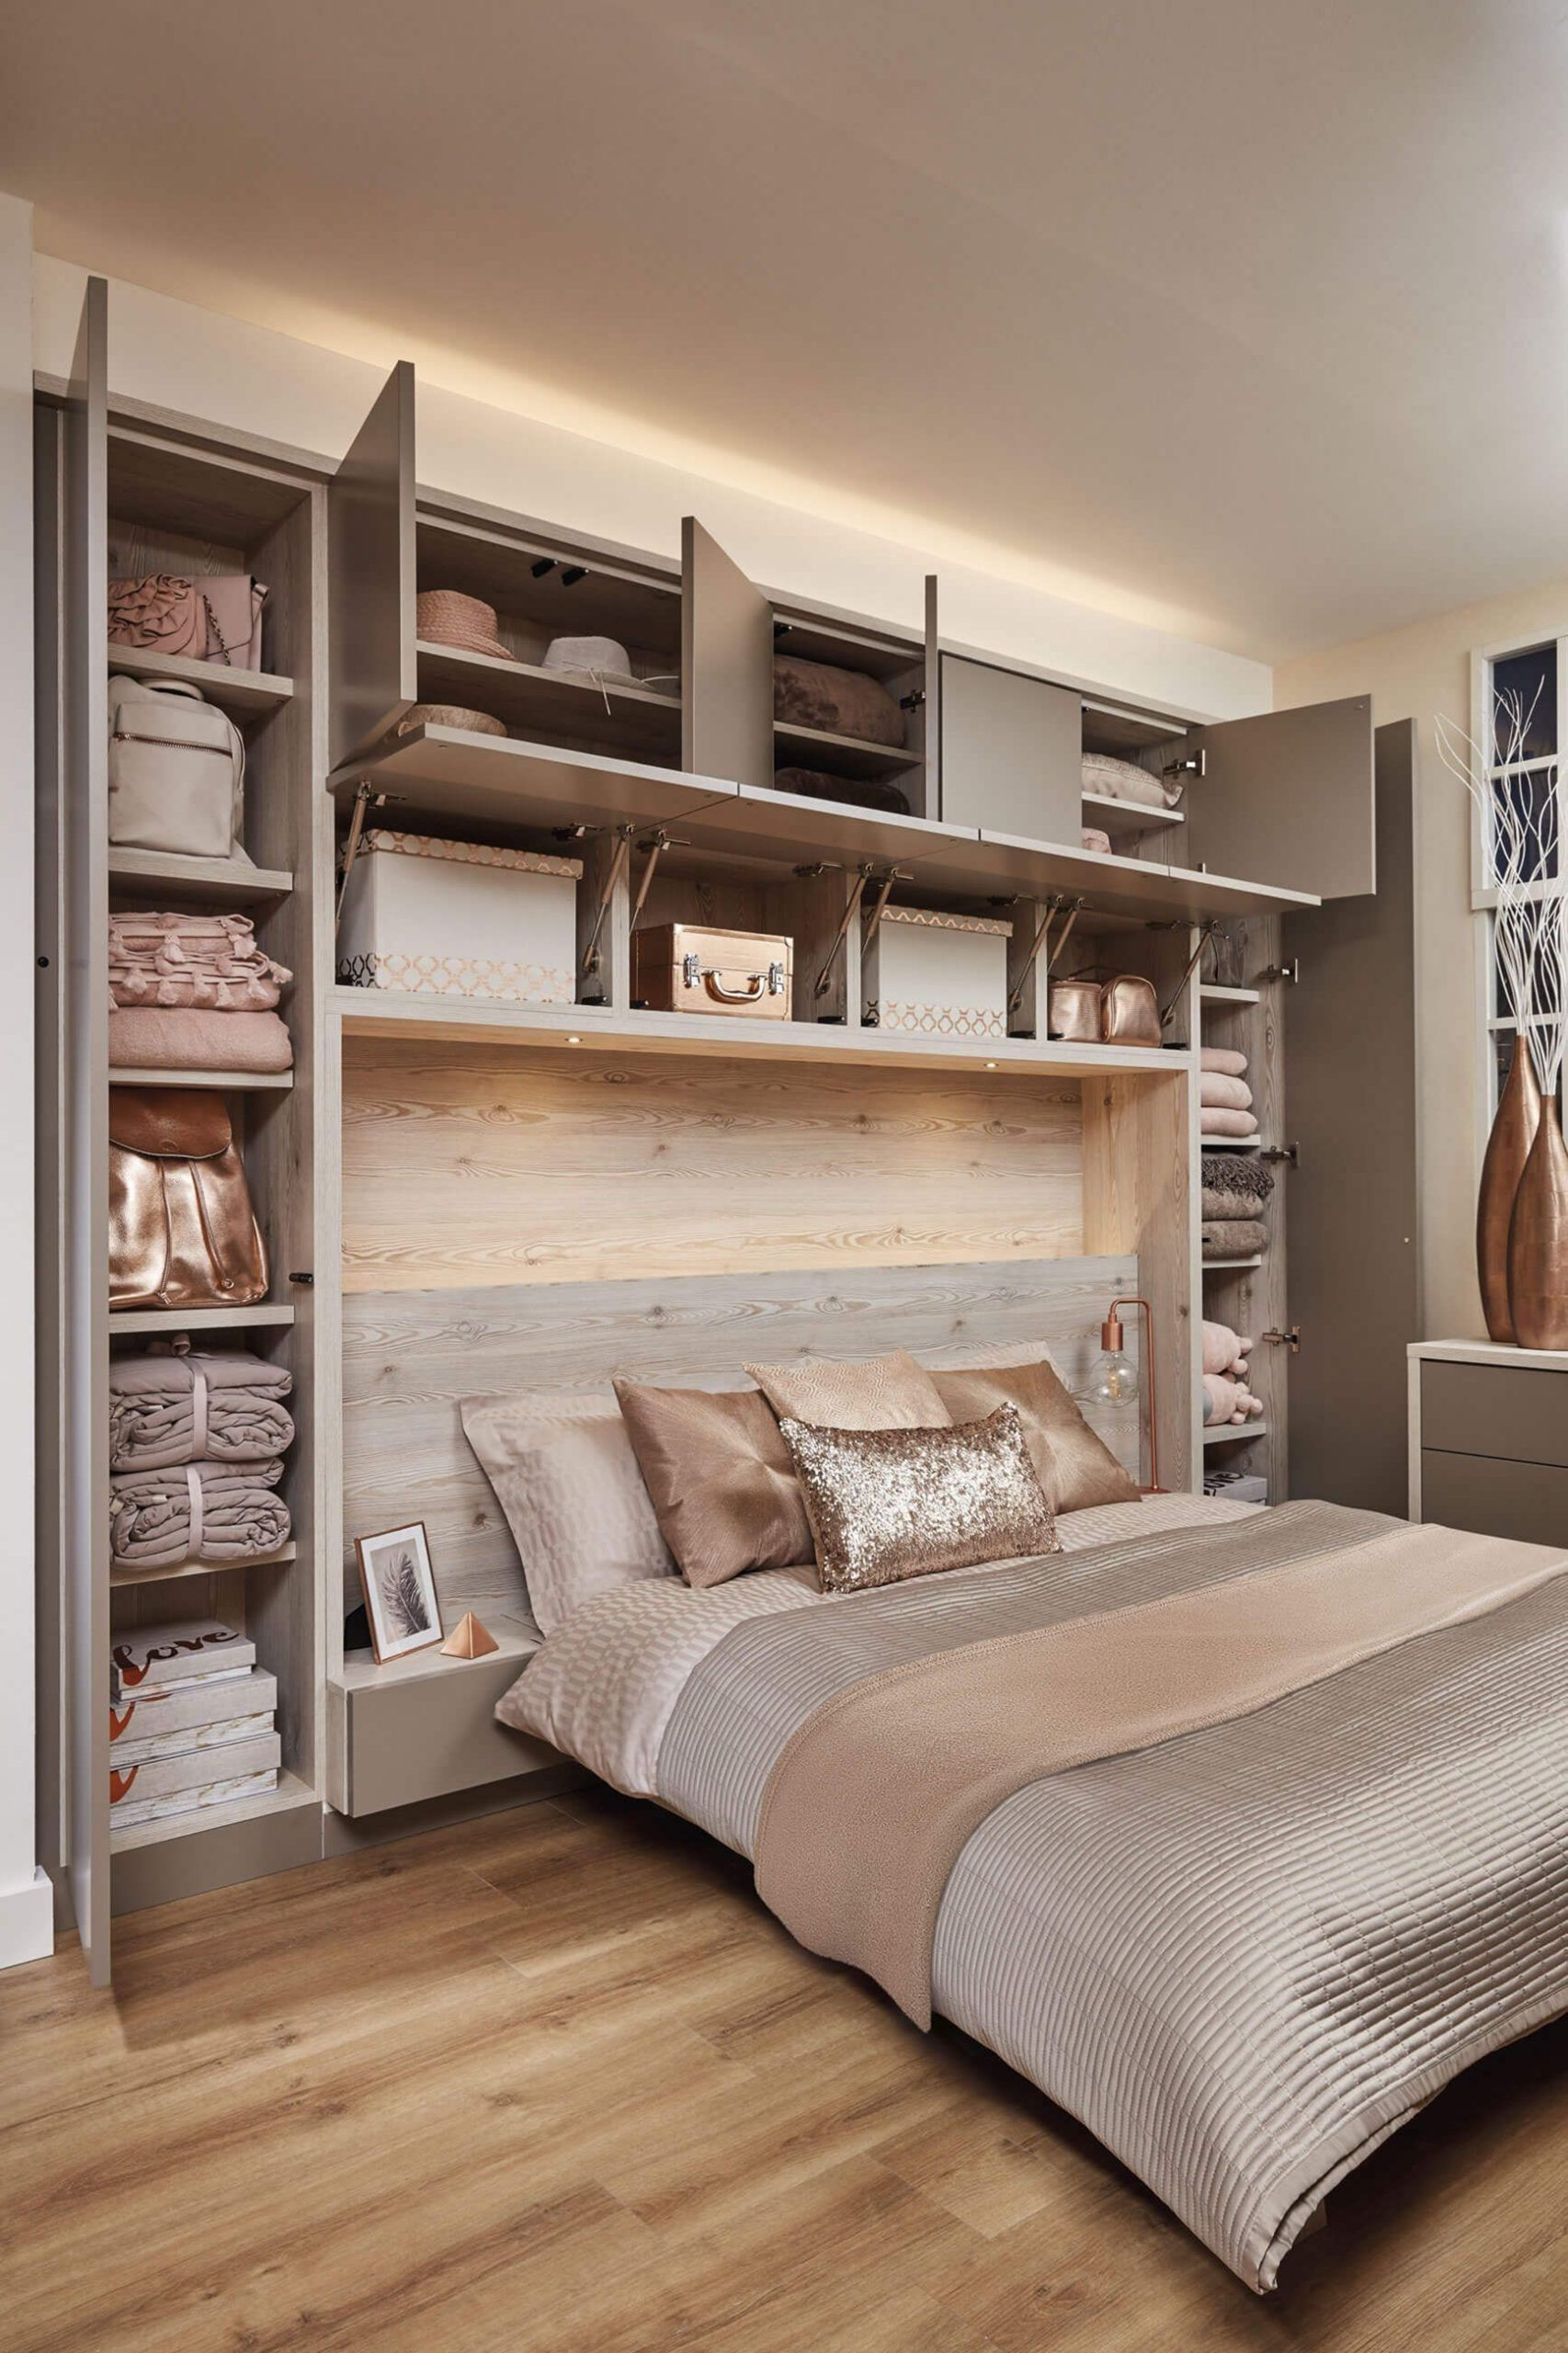 10 Simple Narrow Bedroom Designs You Must Try In Your Small House